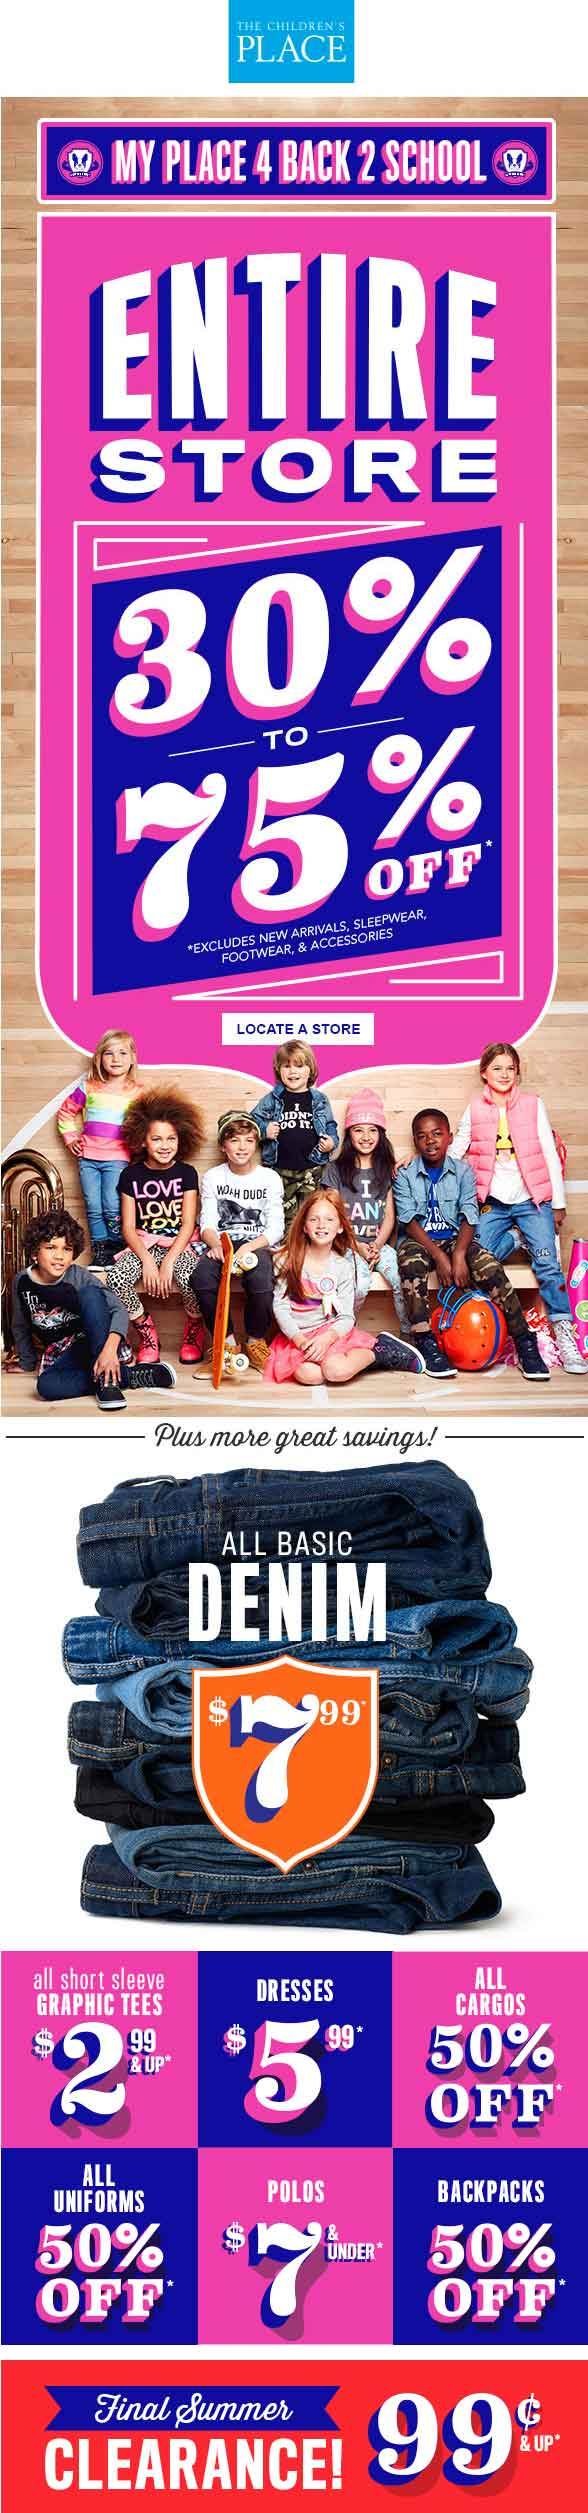 TheChildrensPlace.com Promo Coupon 30-75% off everything at The Childrens Place, or 50% online no code needed